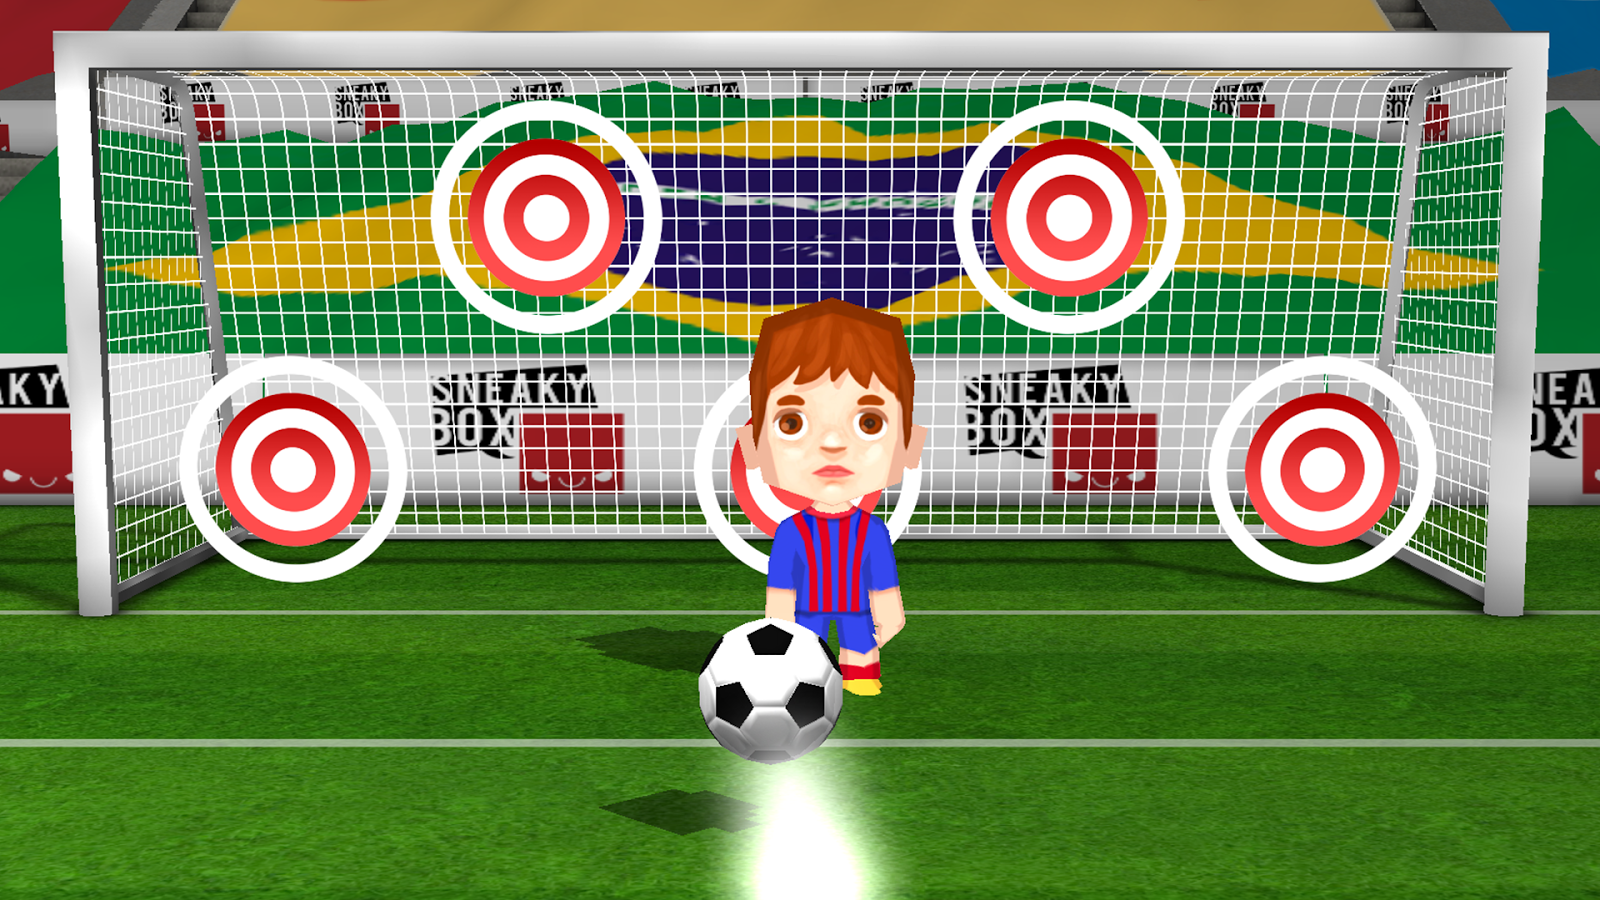 Kids soccer (football) v1.4.3 .apk File